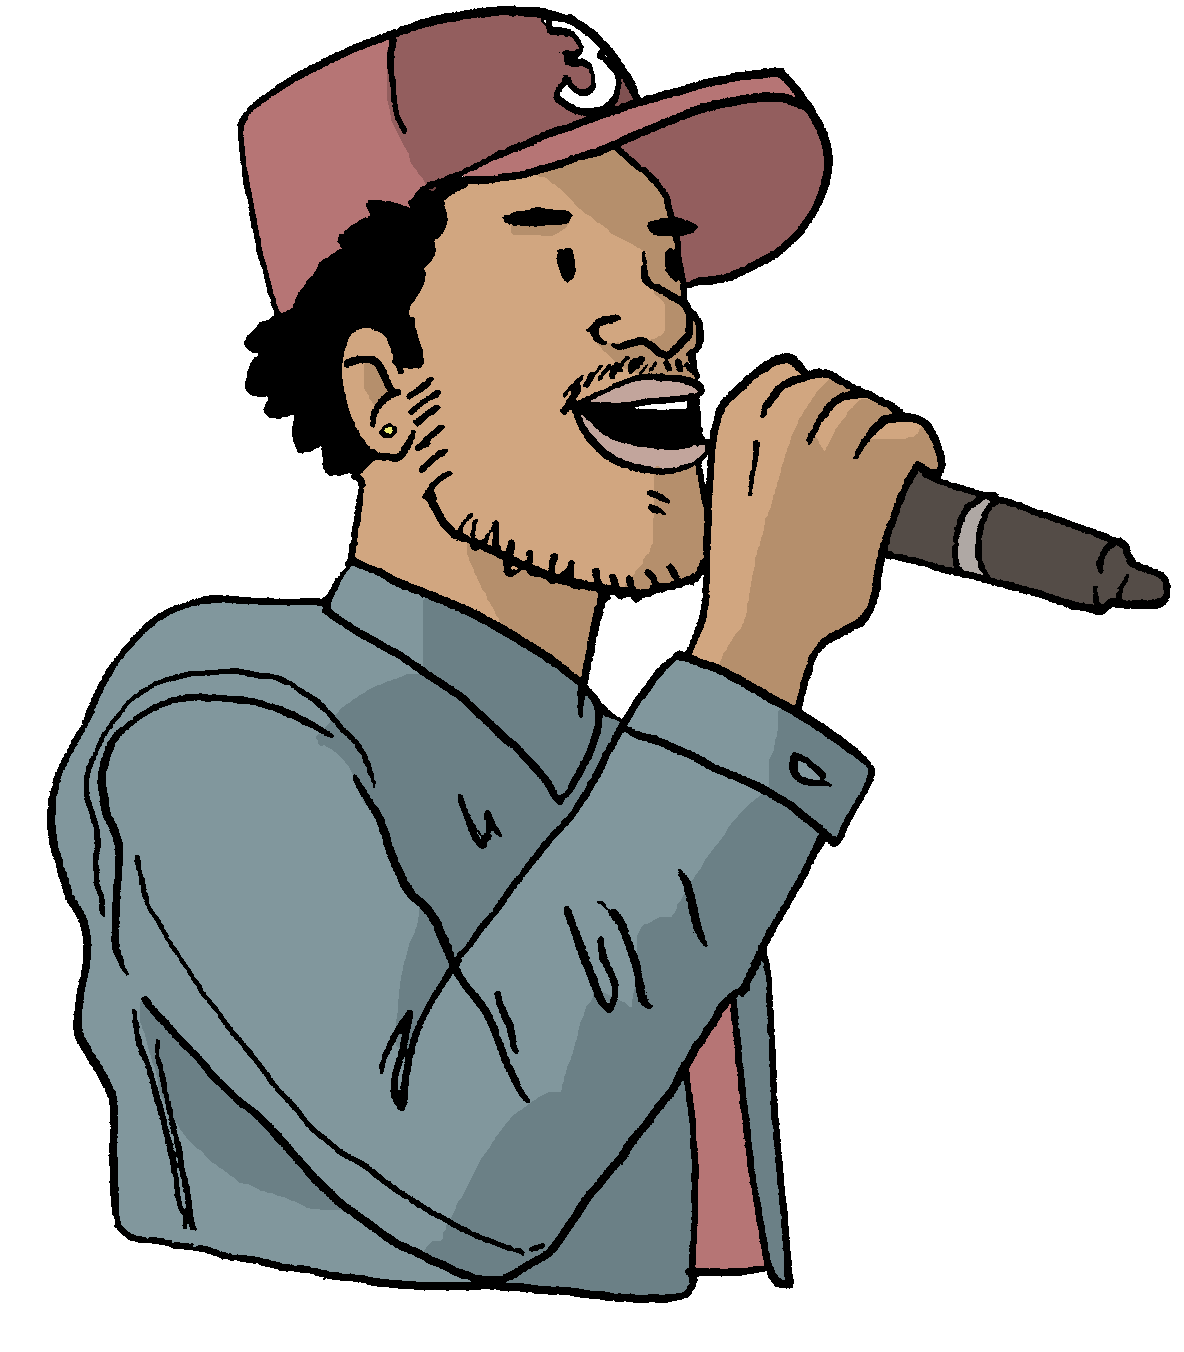 Rappers drawing rap music. Chano for mayor a